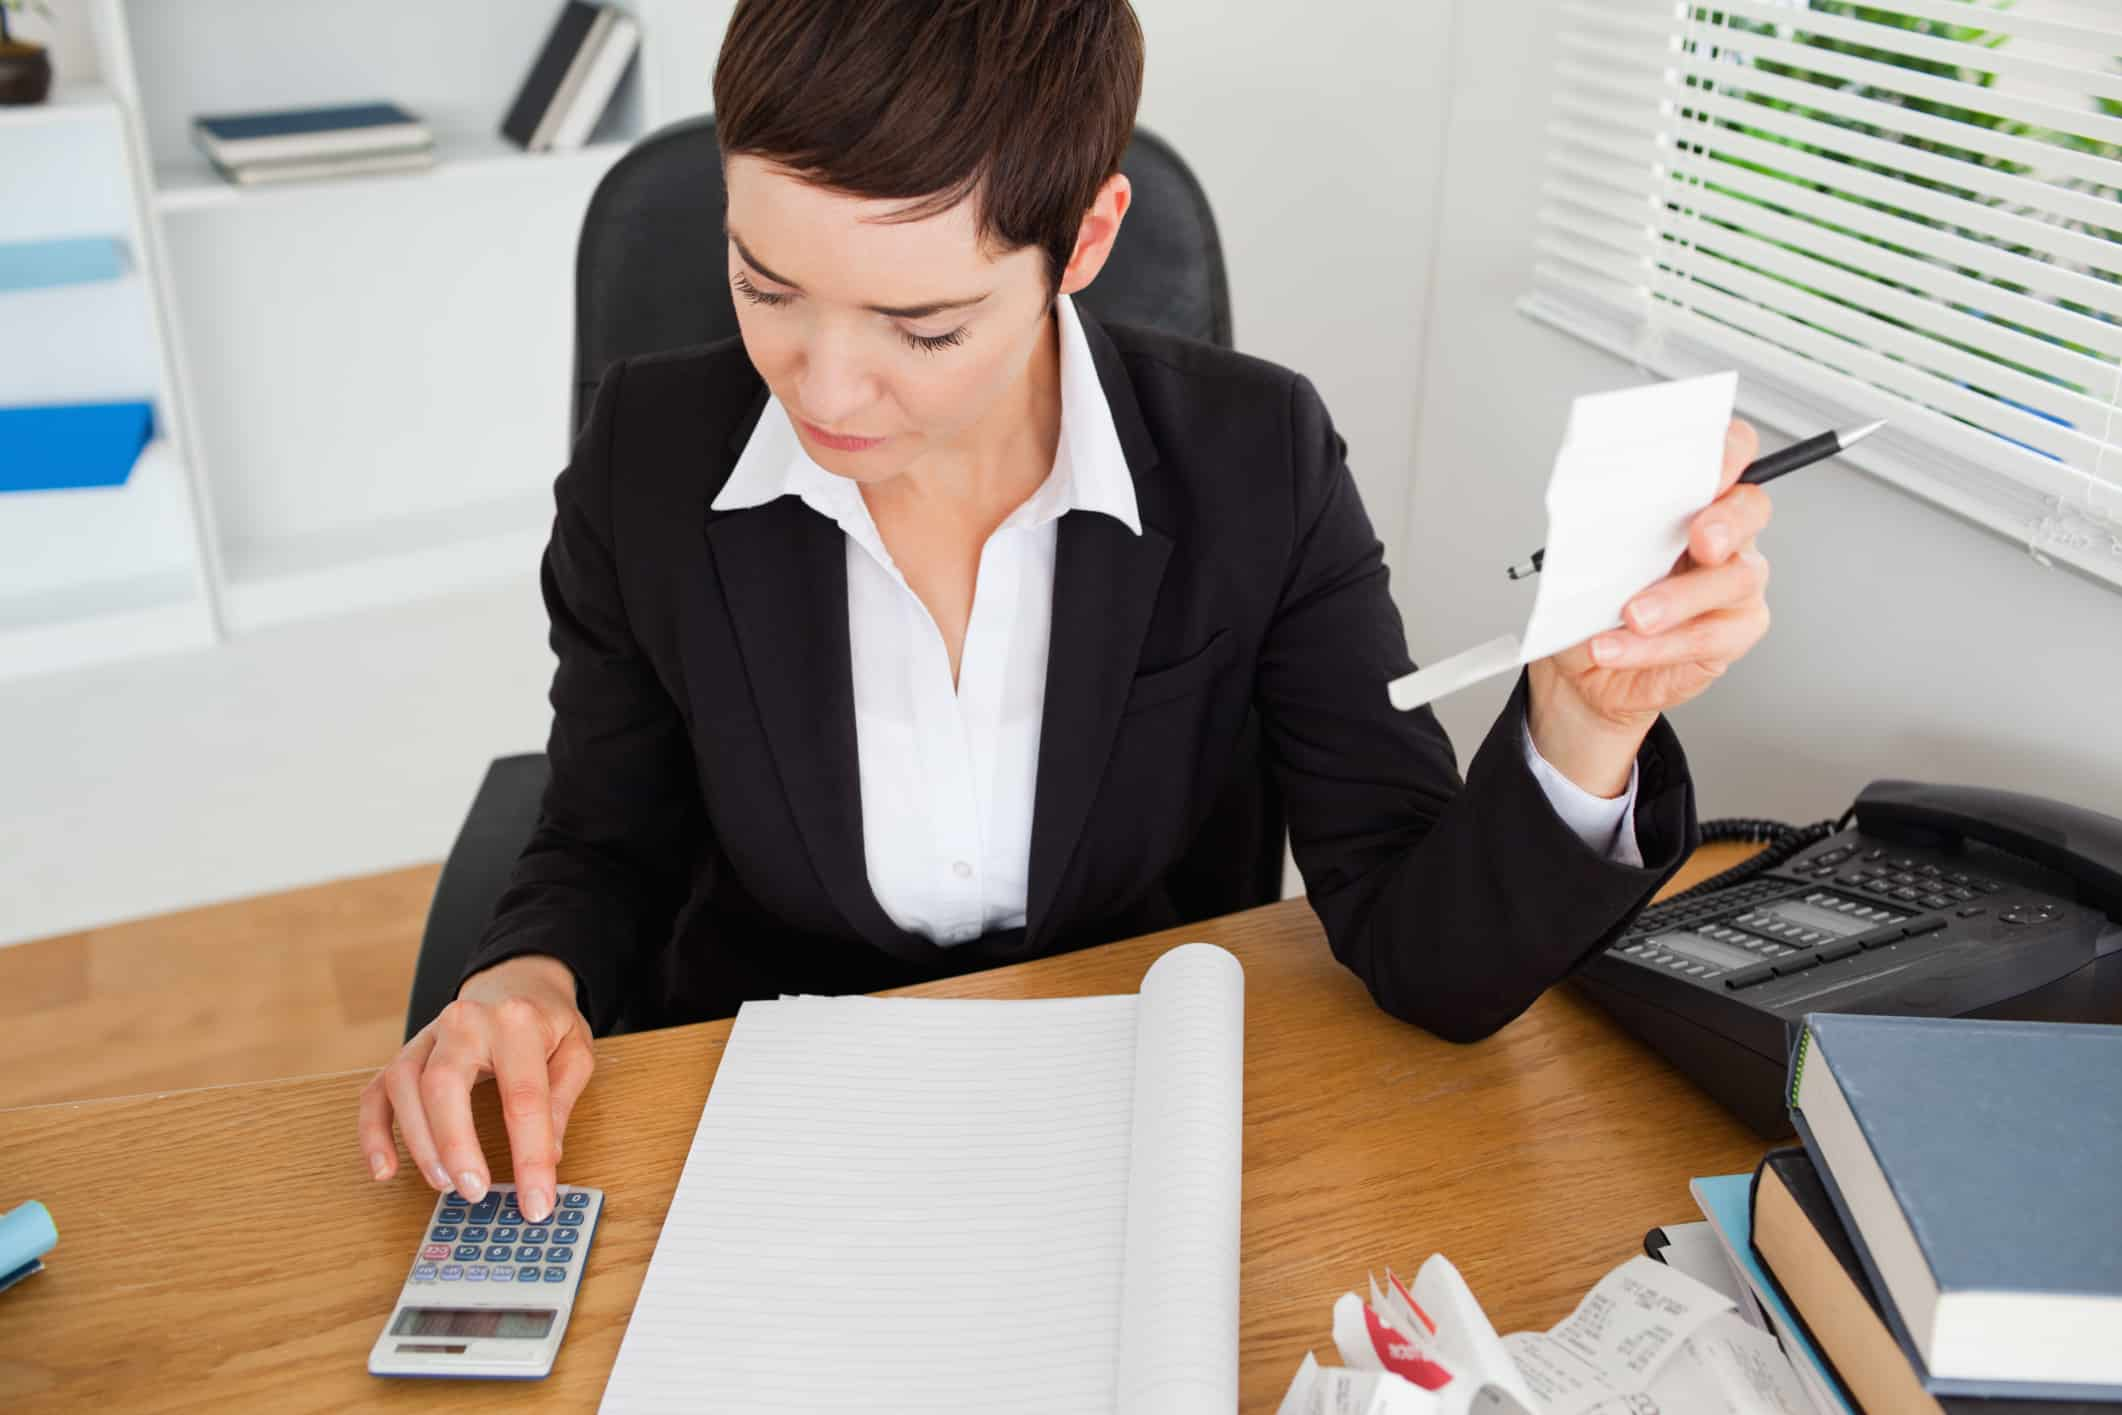 White woman in a suit using a calculator to tally receipts